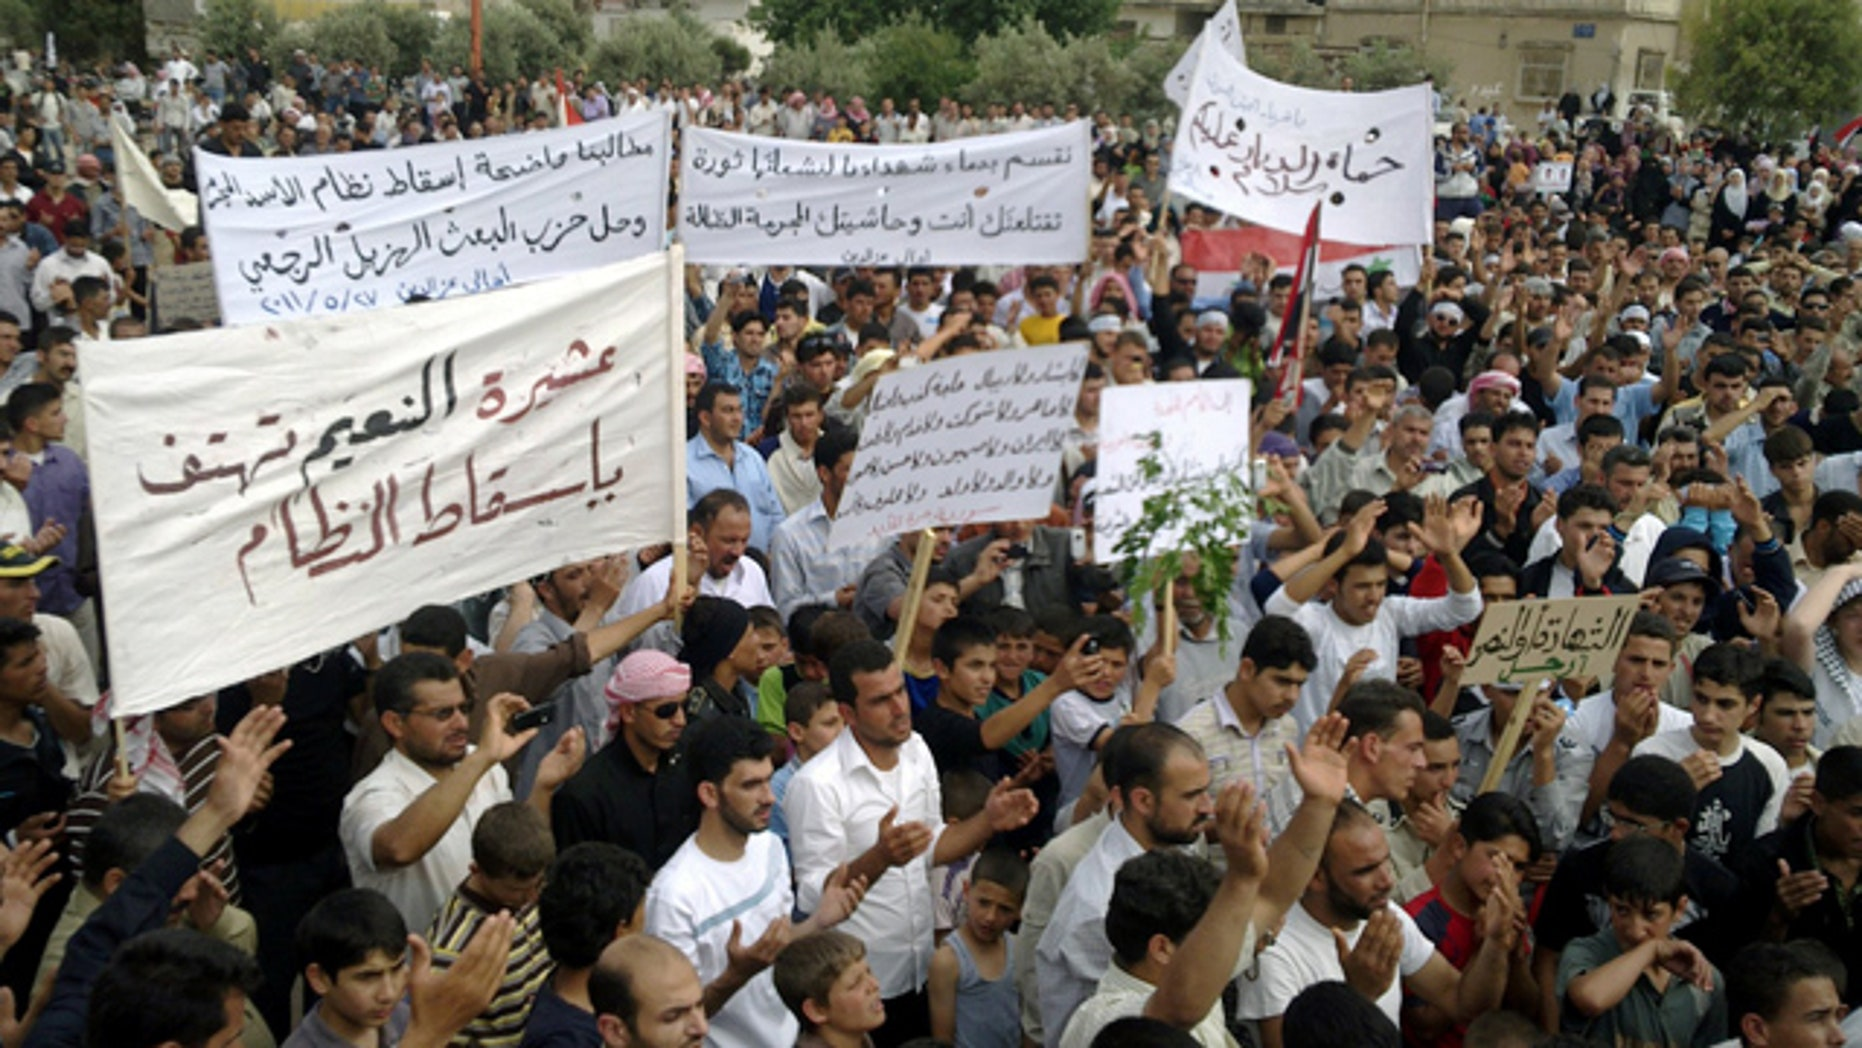 May 27: In this citizen journalism image made on a mobile phone and provided by Shaam News Network, Syrian anti-regime protesters carry banners during a rally in Talbiseh, in the central province of Homs, Syria.